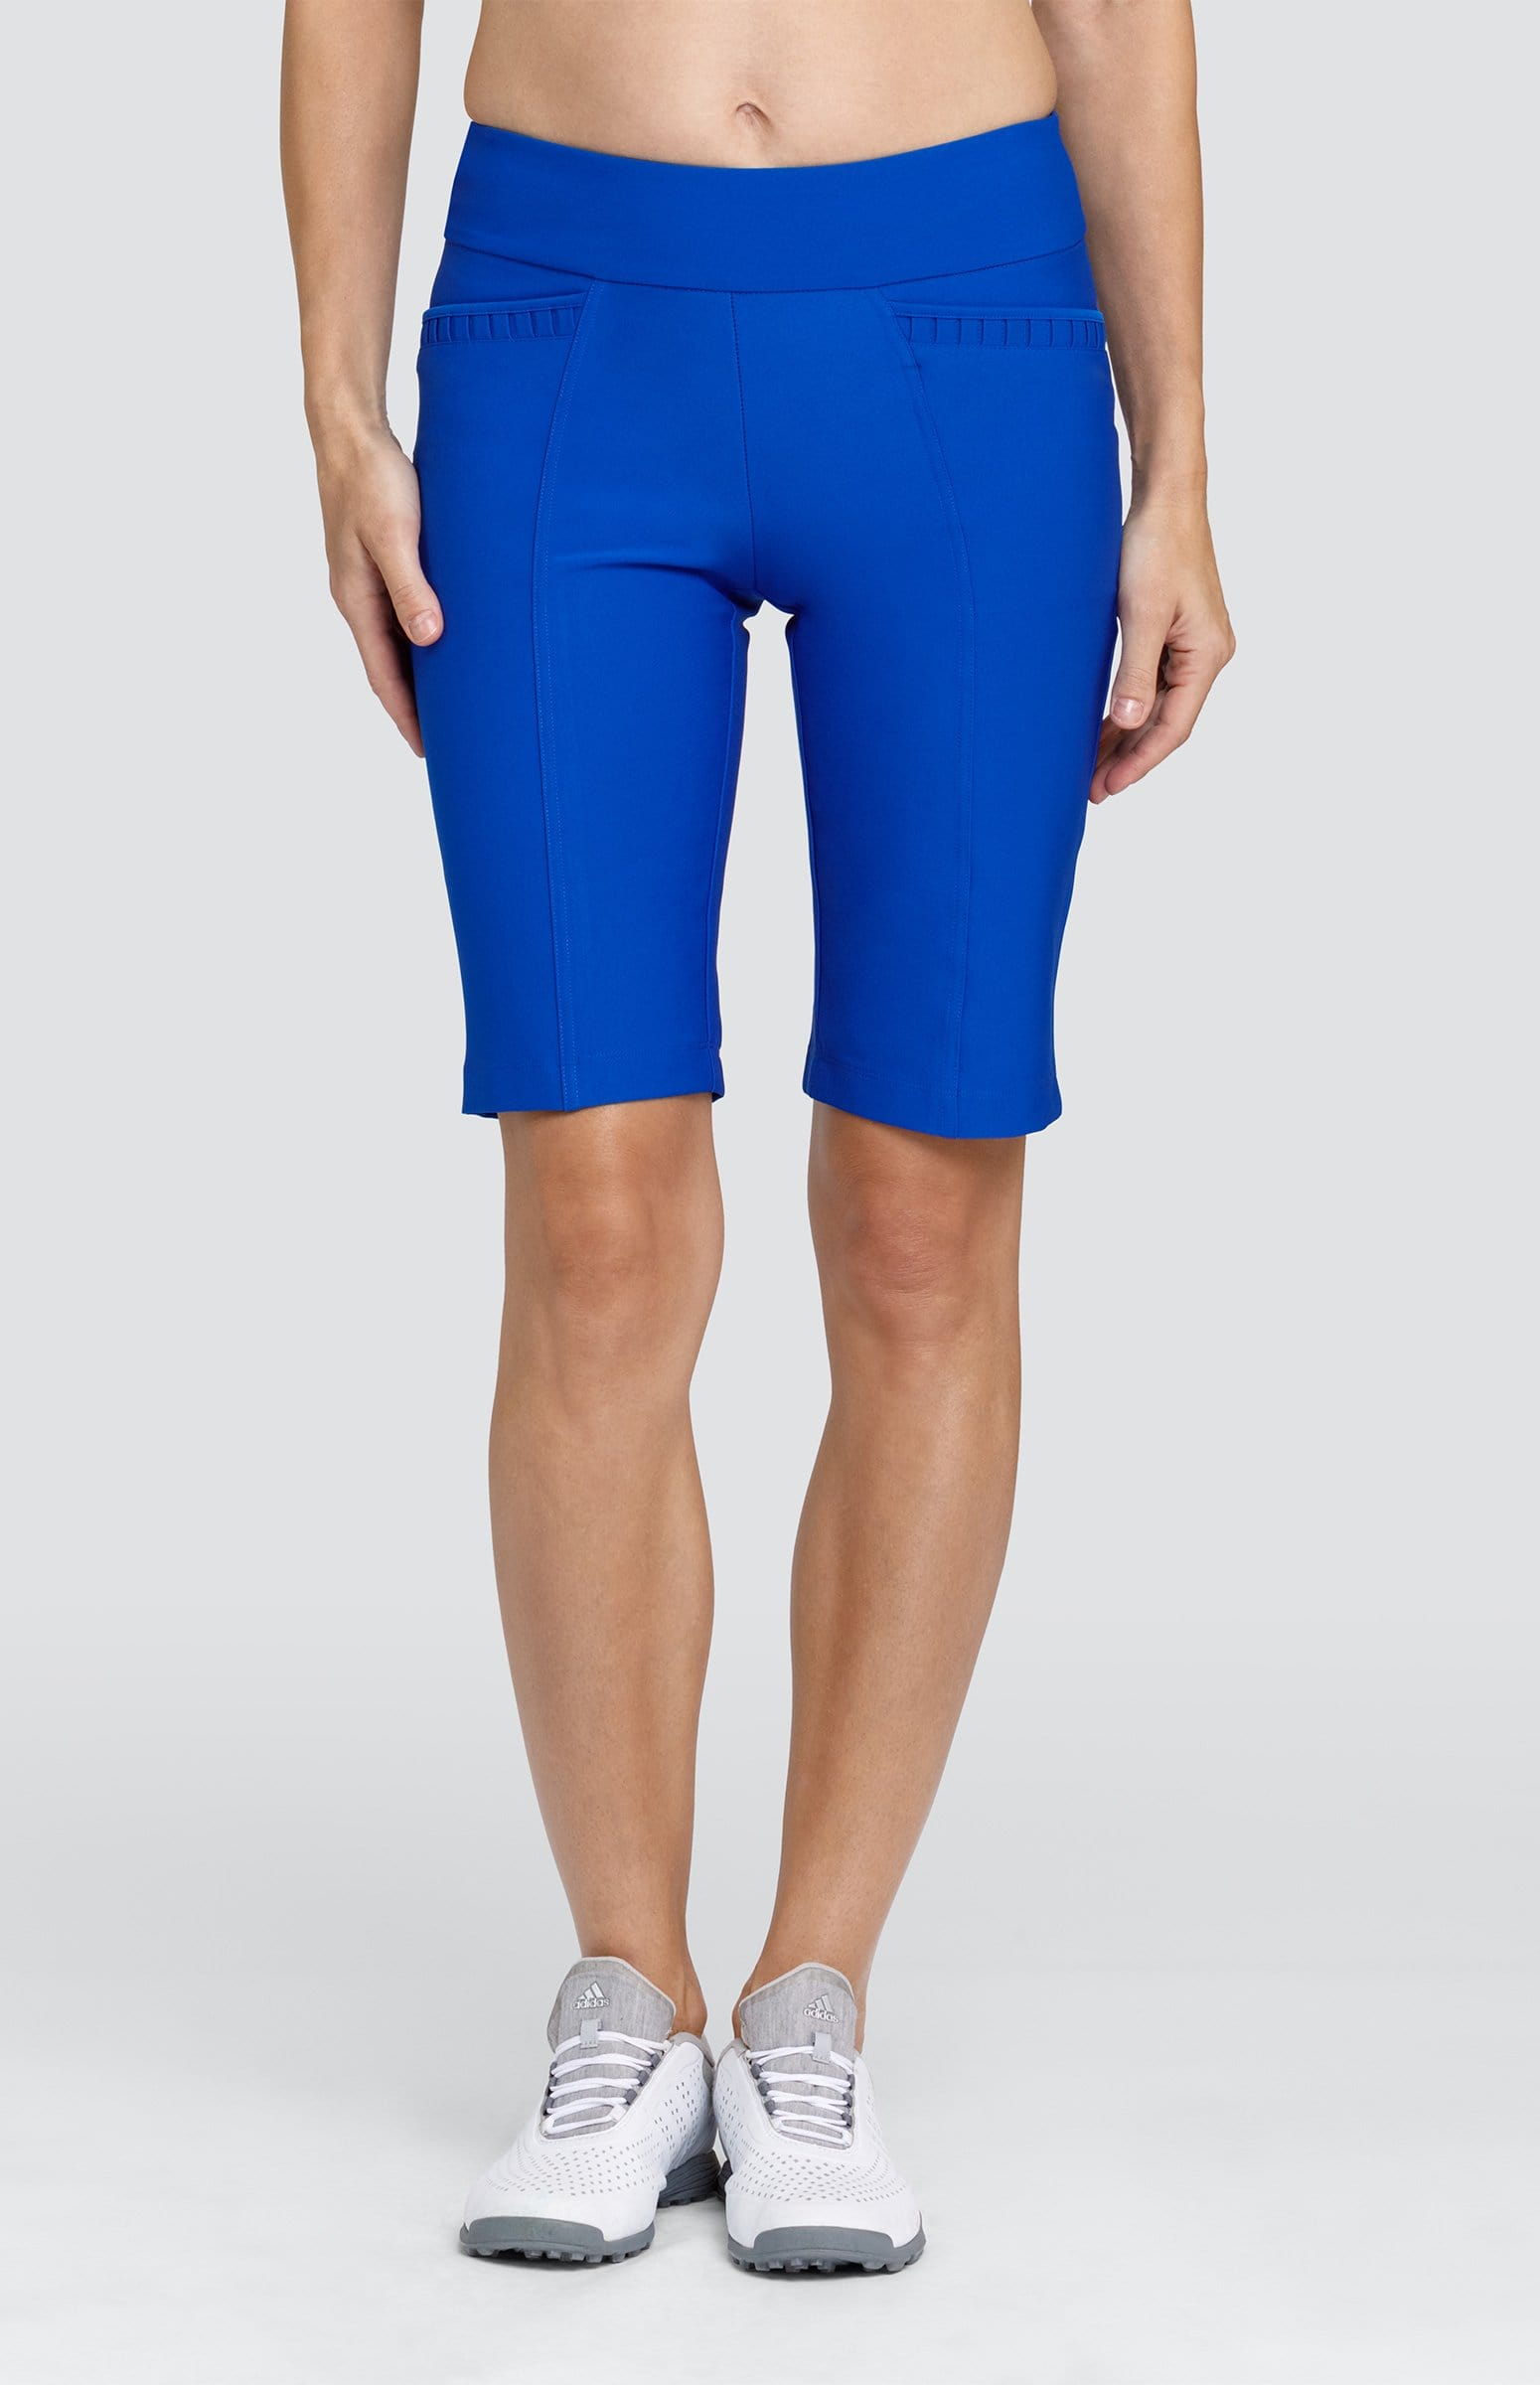 Adelaide Short - Capri Blue